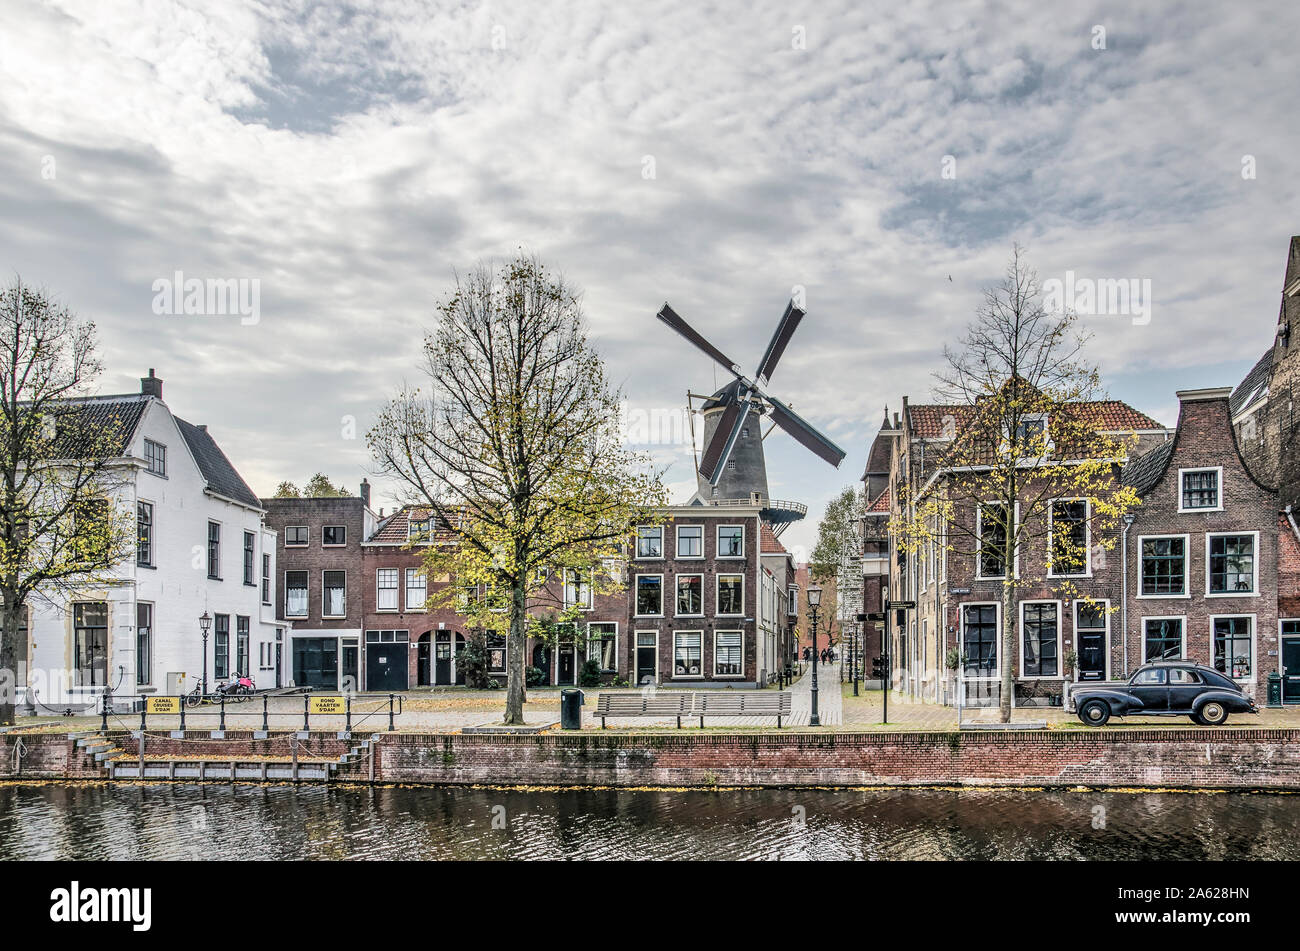 Schiedam, The Netherlands, October 23, 2019: view across the Long Harbour towards Fish Market square, with a windmill, old lanterns and houses and an Stock Photo